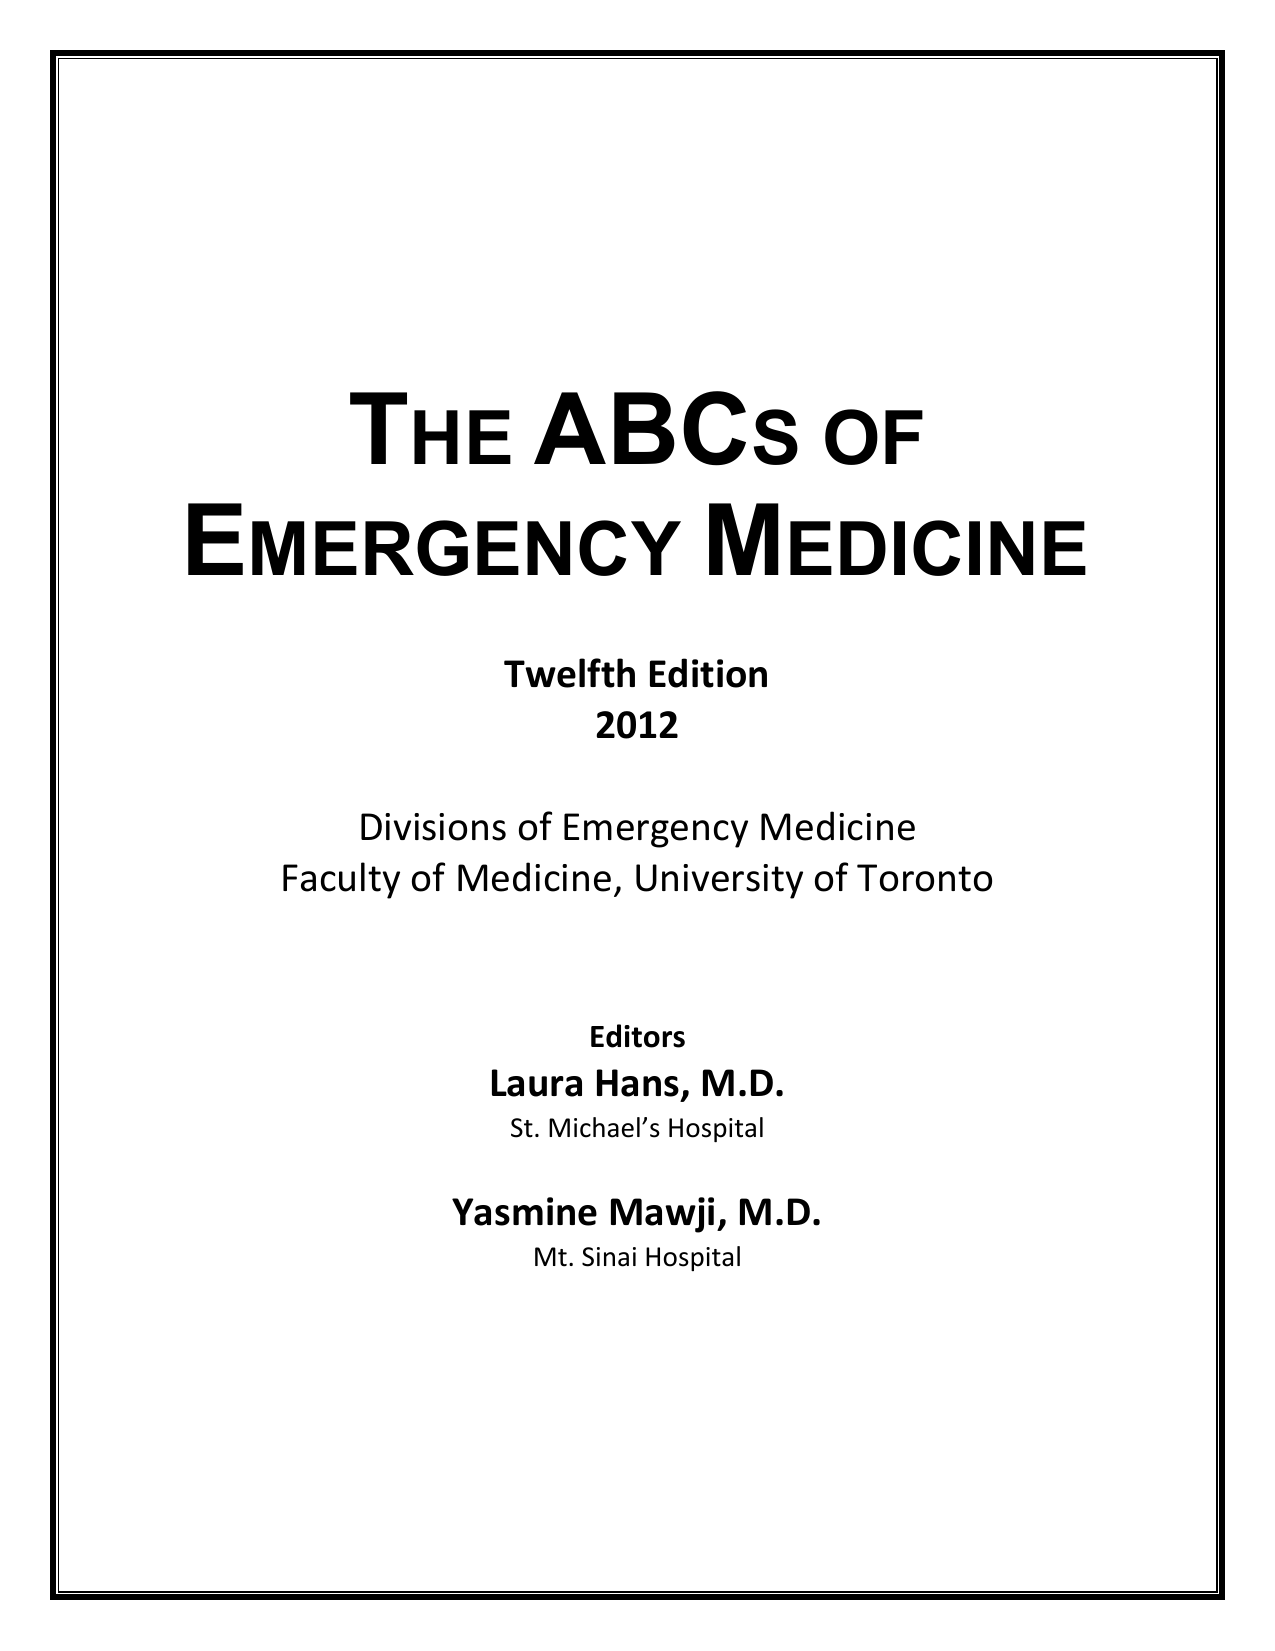 abcs of emergency medicine pdf